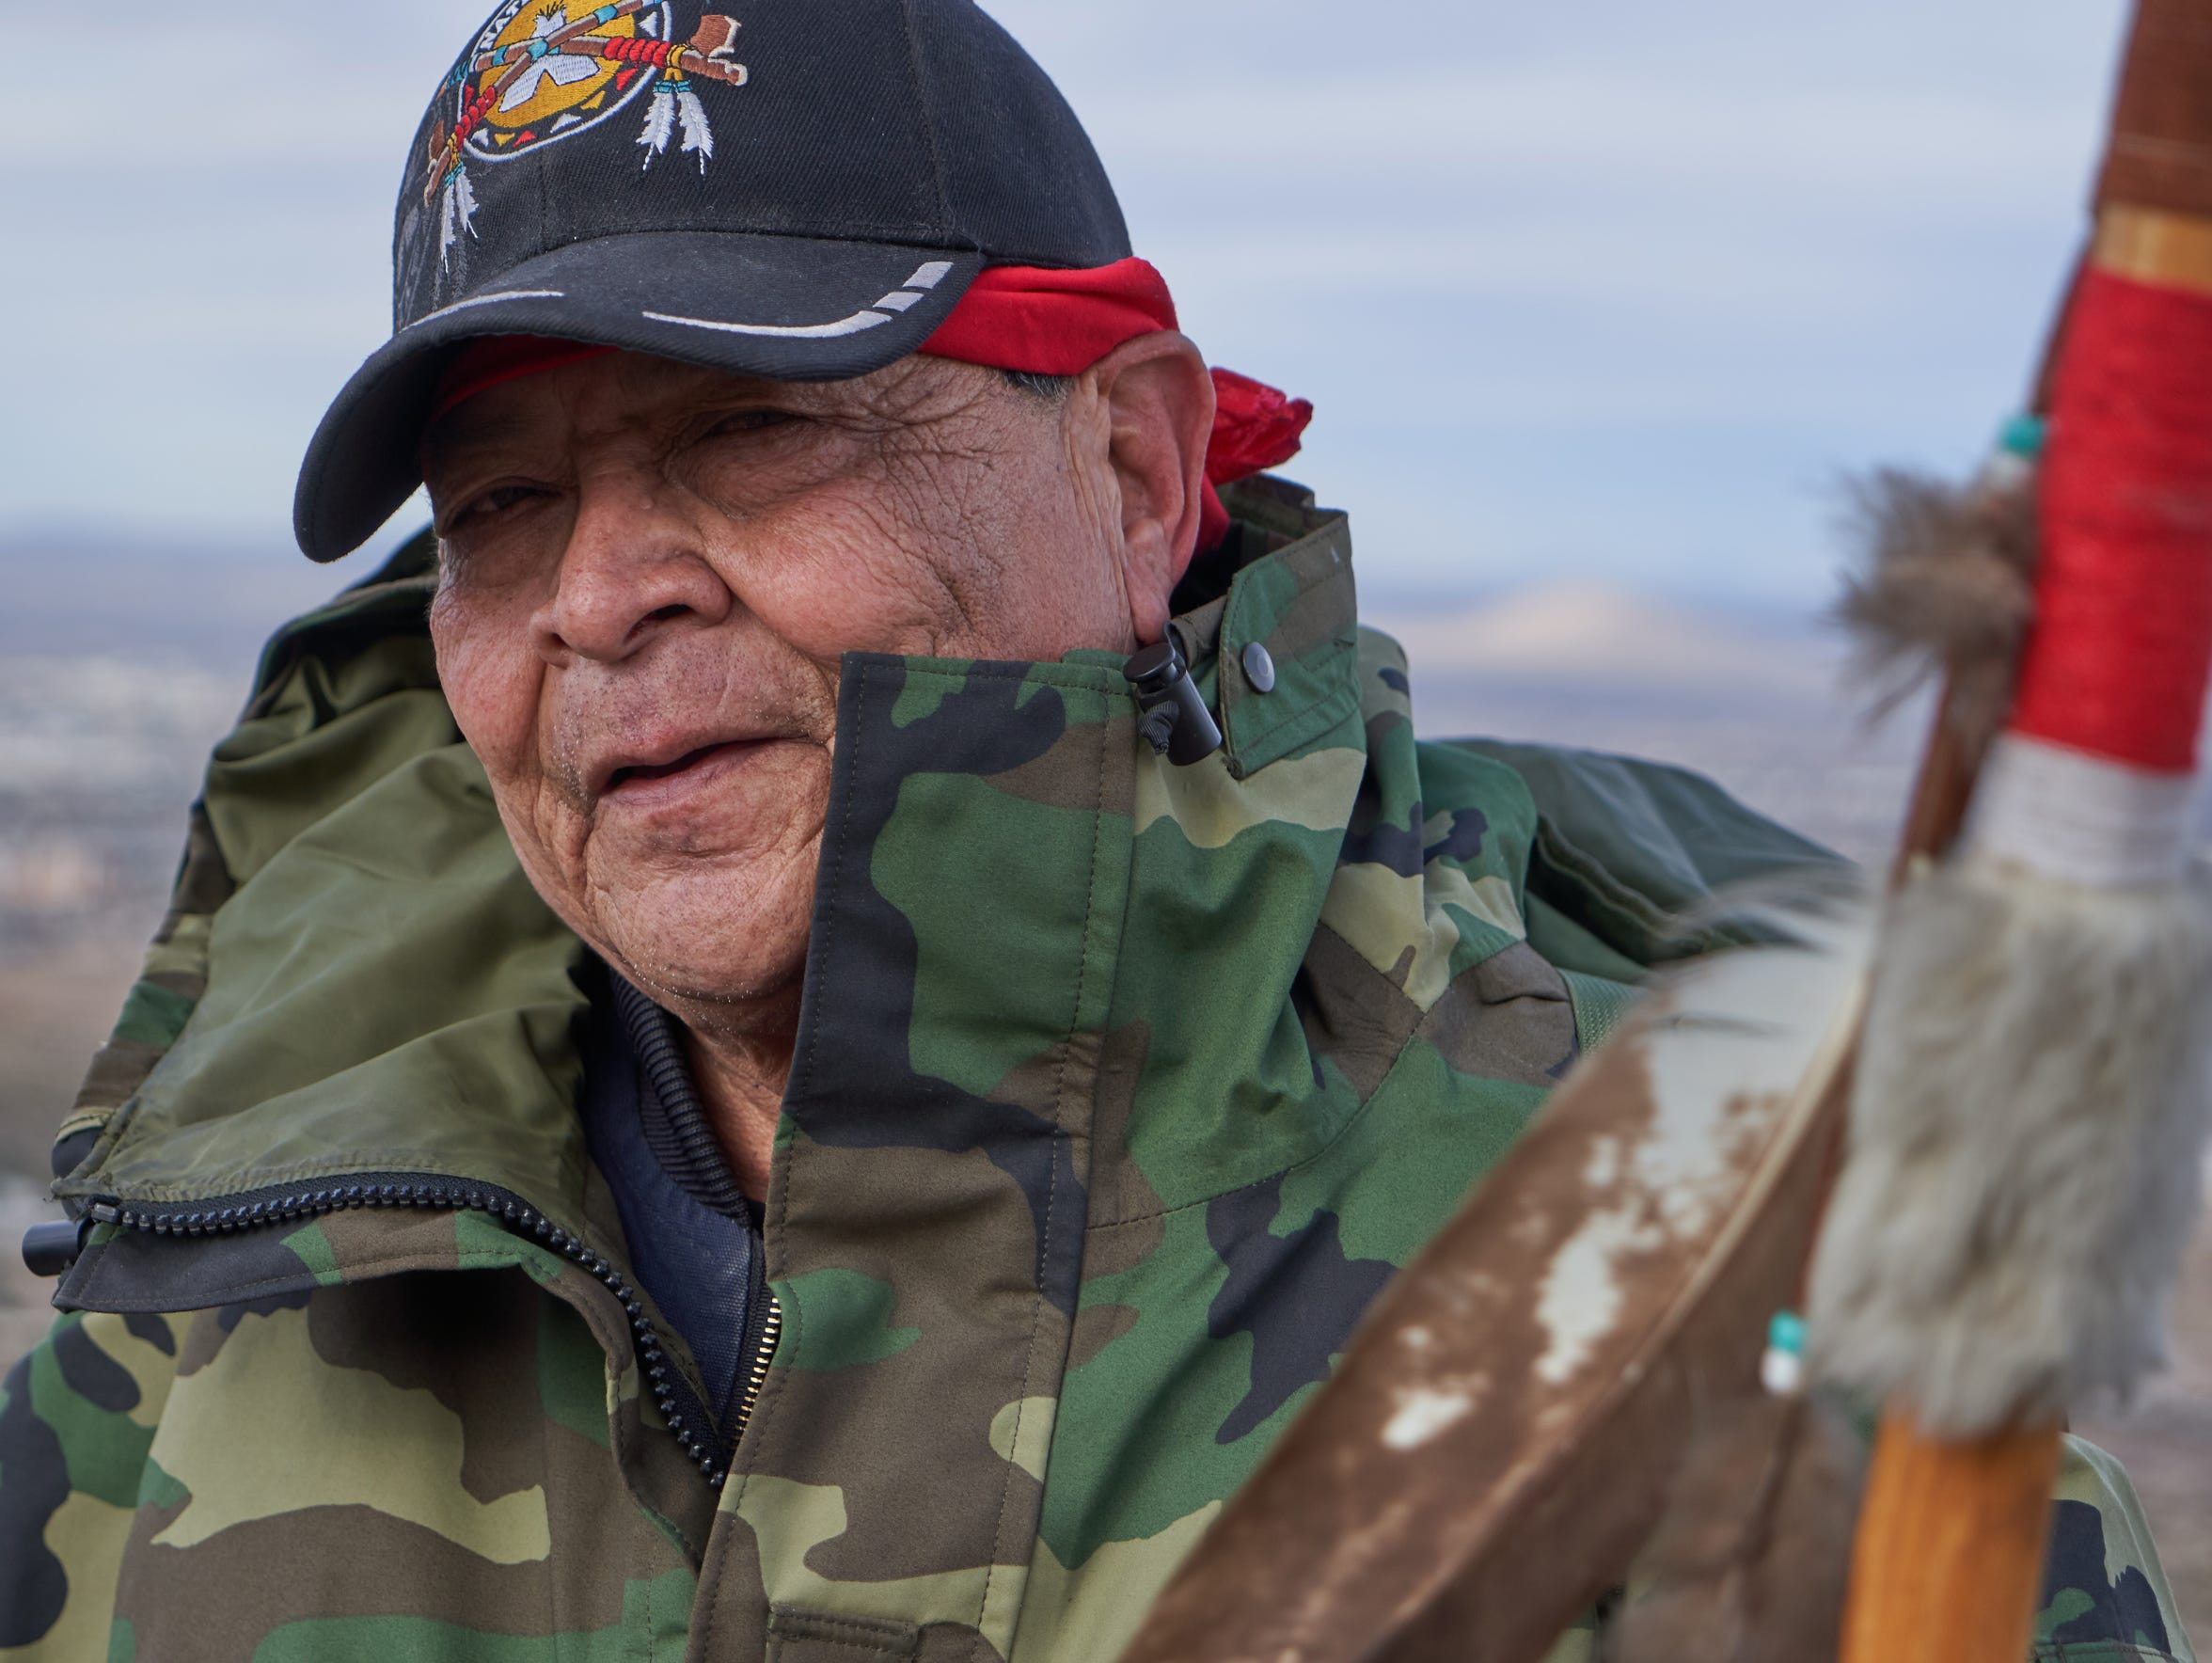 Raul Padilla, 67, is pictured on the trail of Tortugas